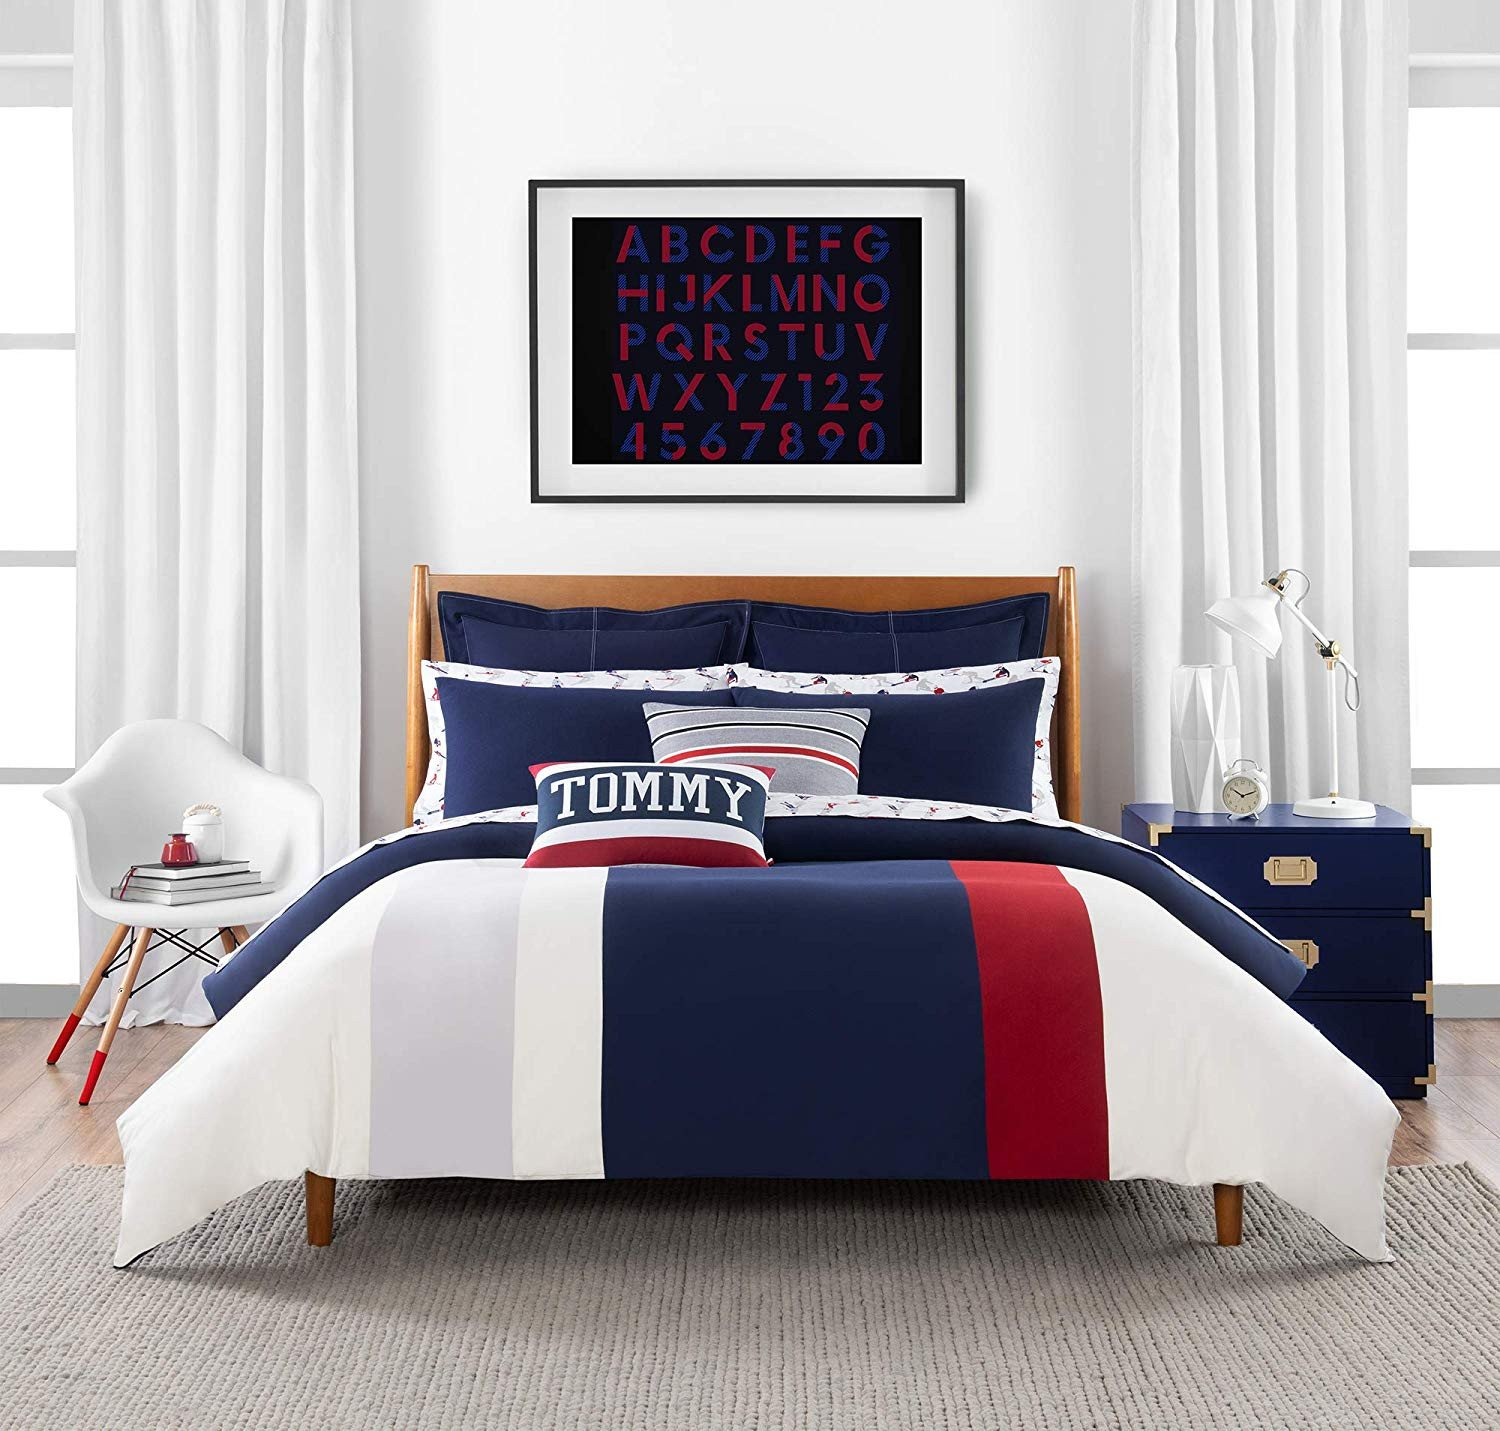 Navy and White Bedroom Elegant Amazon tommy Hilfiger Clash Of 85 Stripe Bedding